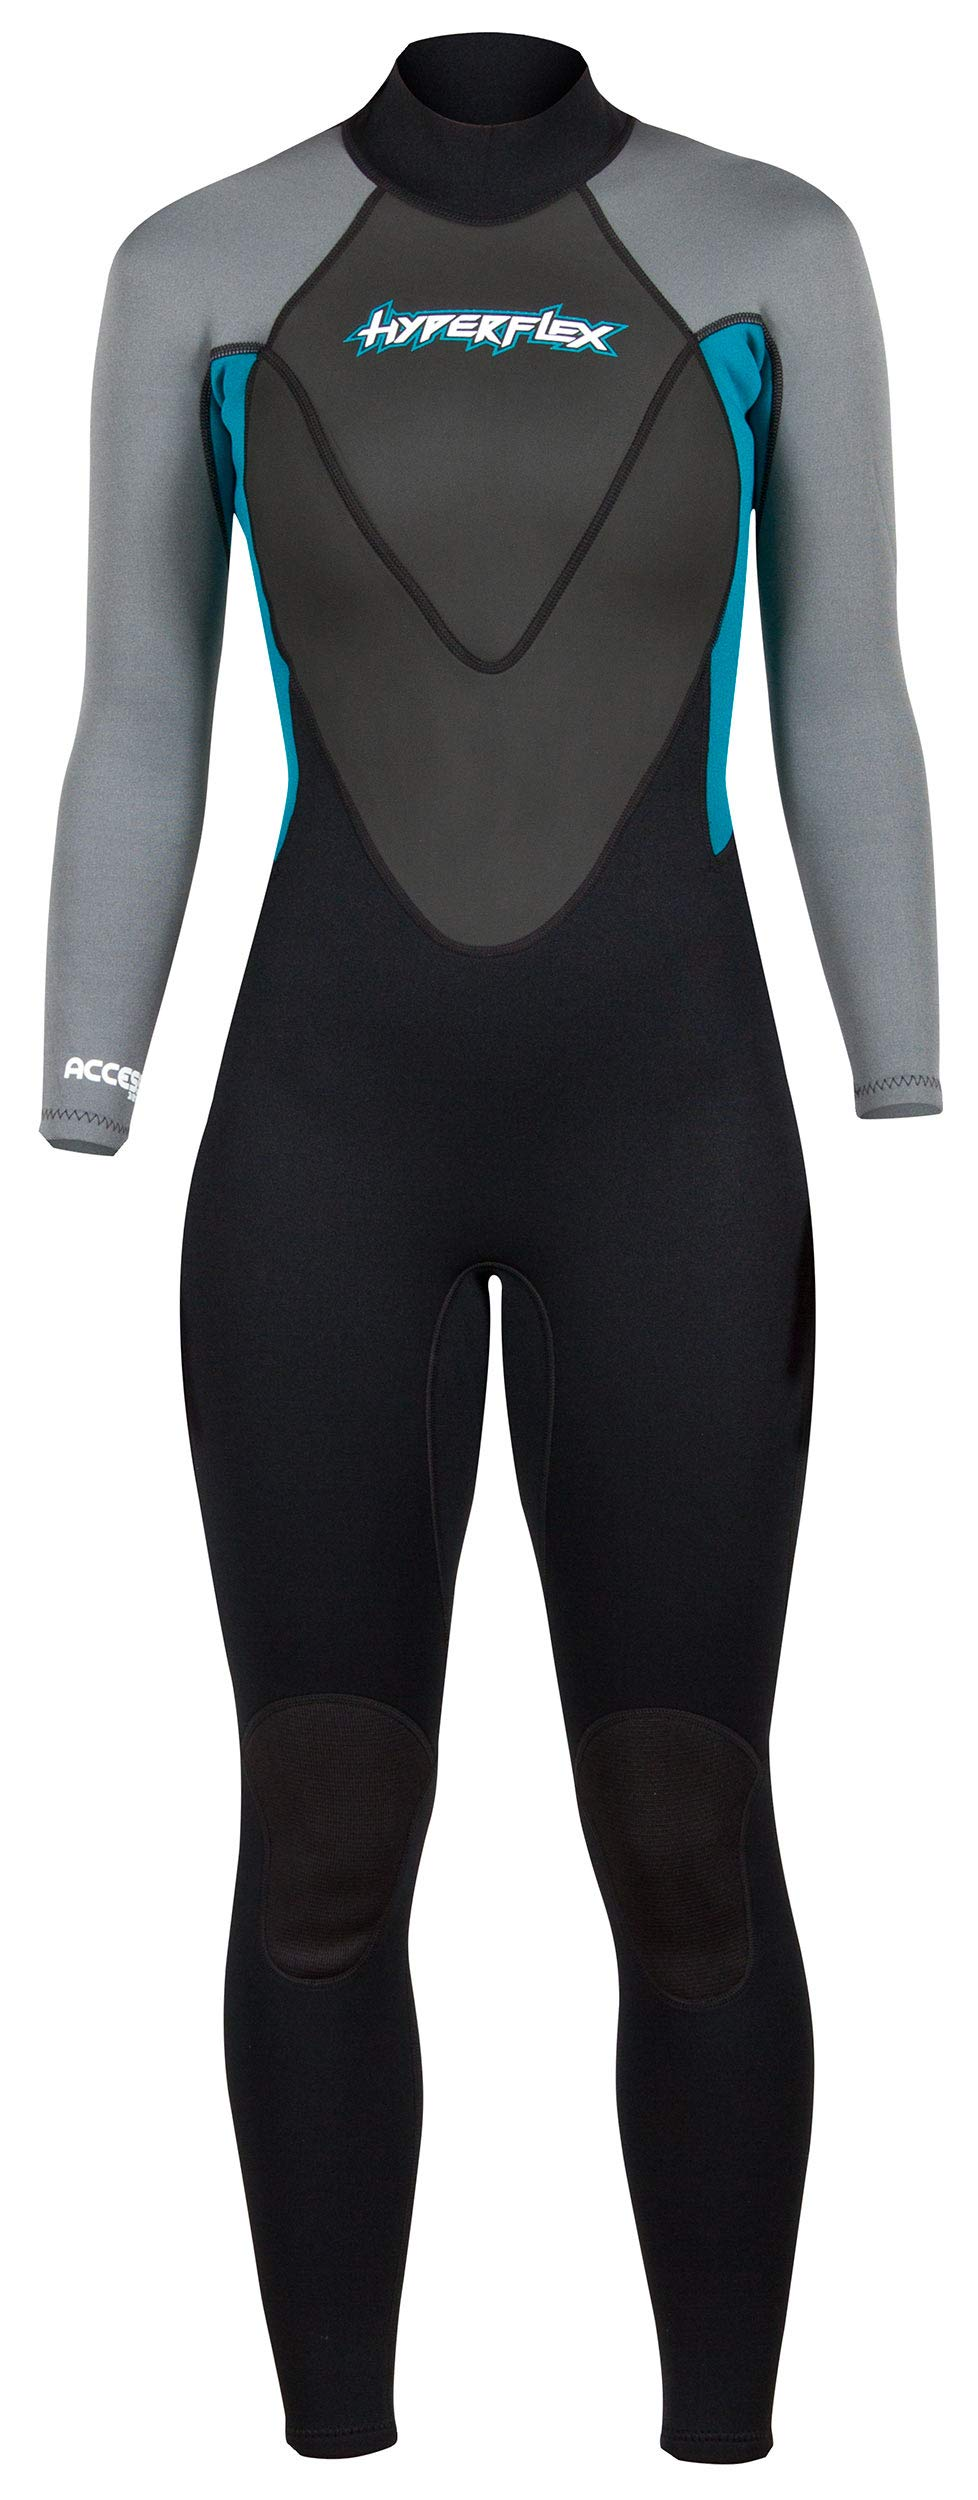 Hyperflex Men's and Women's 3mm Full Body Wetsuit – SURFING, Water Sports, Scuba Diving, Snorkeling - Comfort, Flexible, Anatomical Fit - and Adjustable Collar